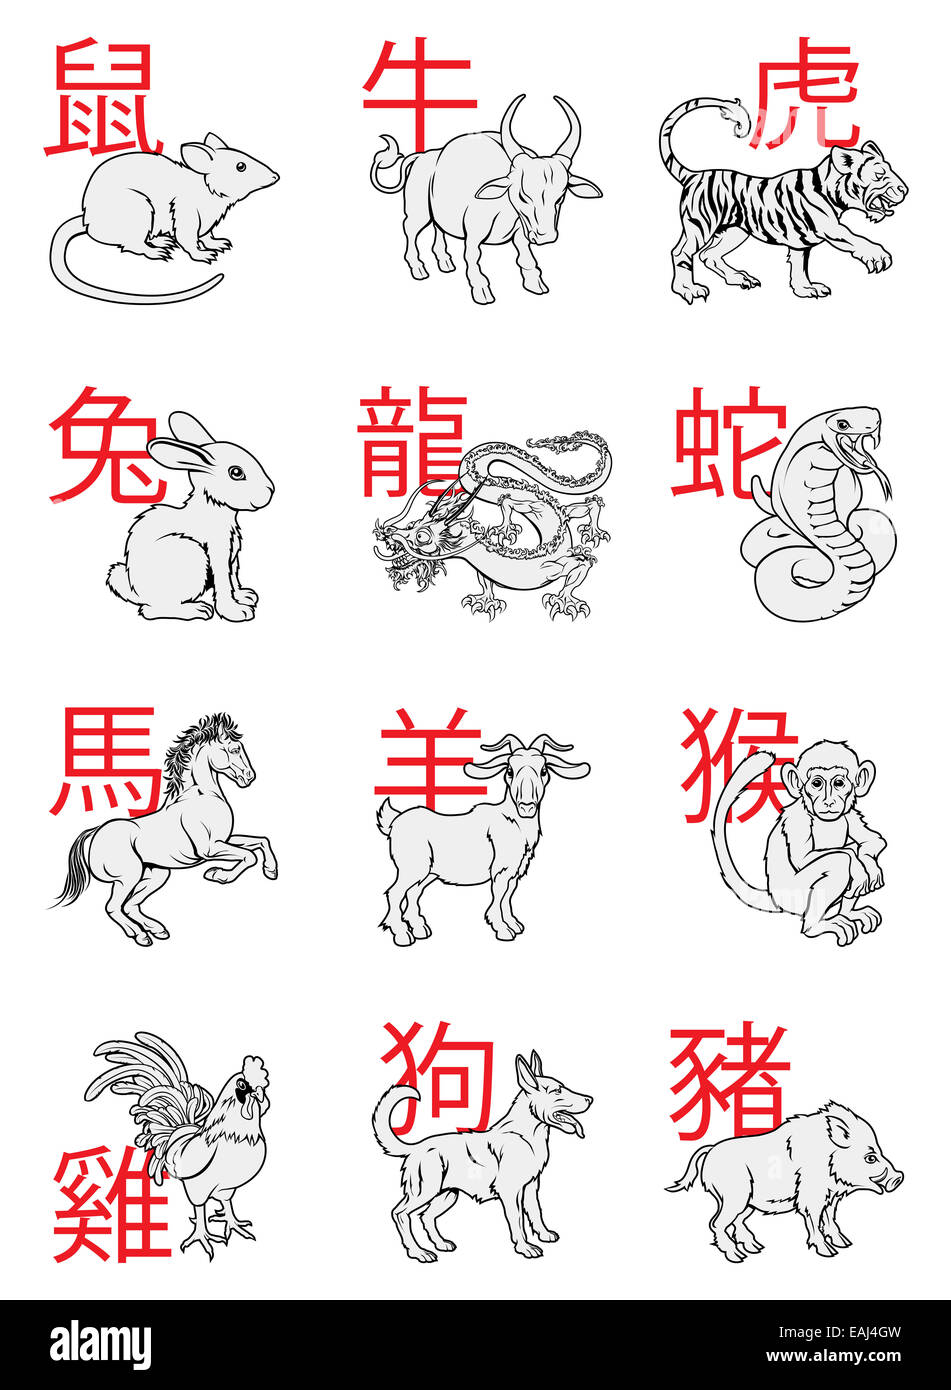 A series of Chinese New Year Zodiac Signs with the calligraphy writing behind each animal - Stock Image